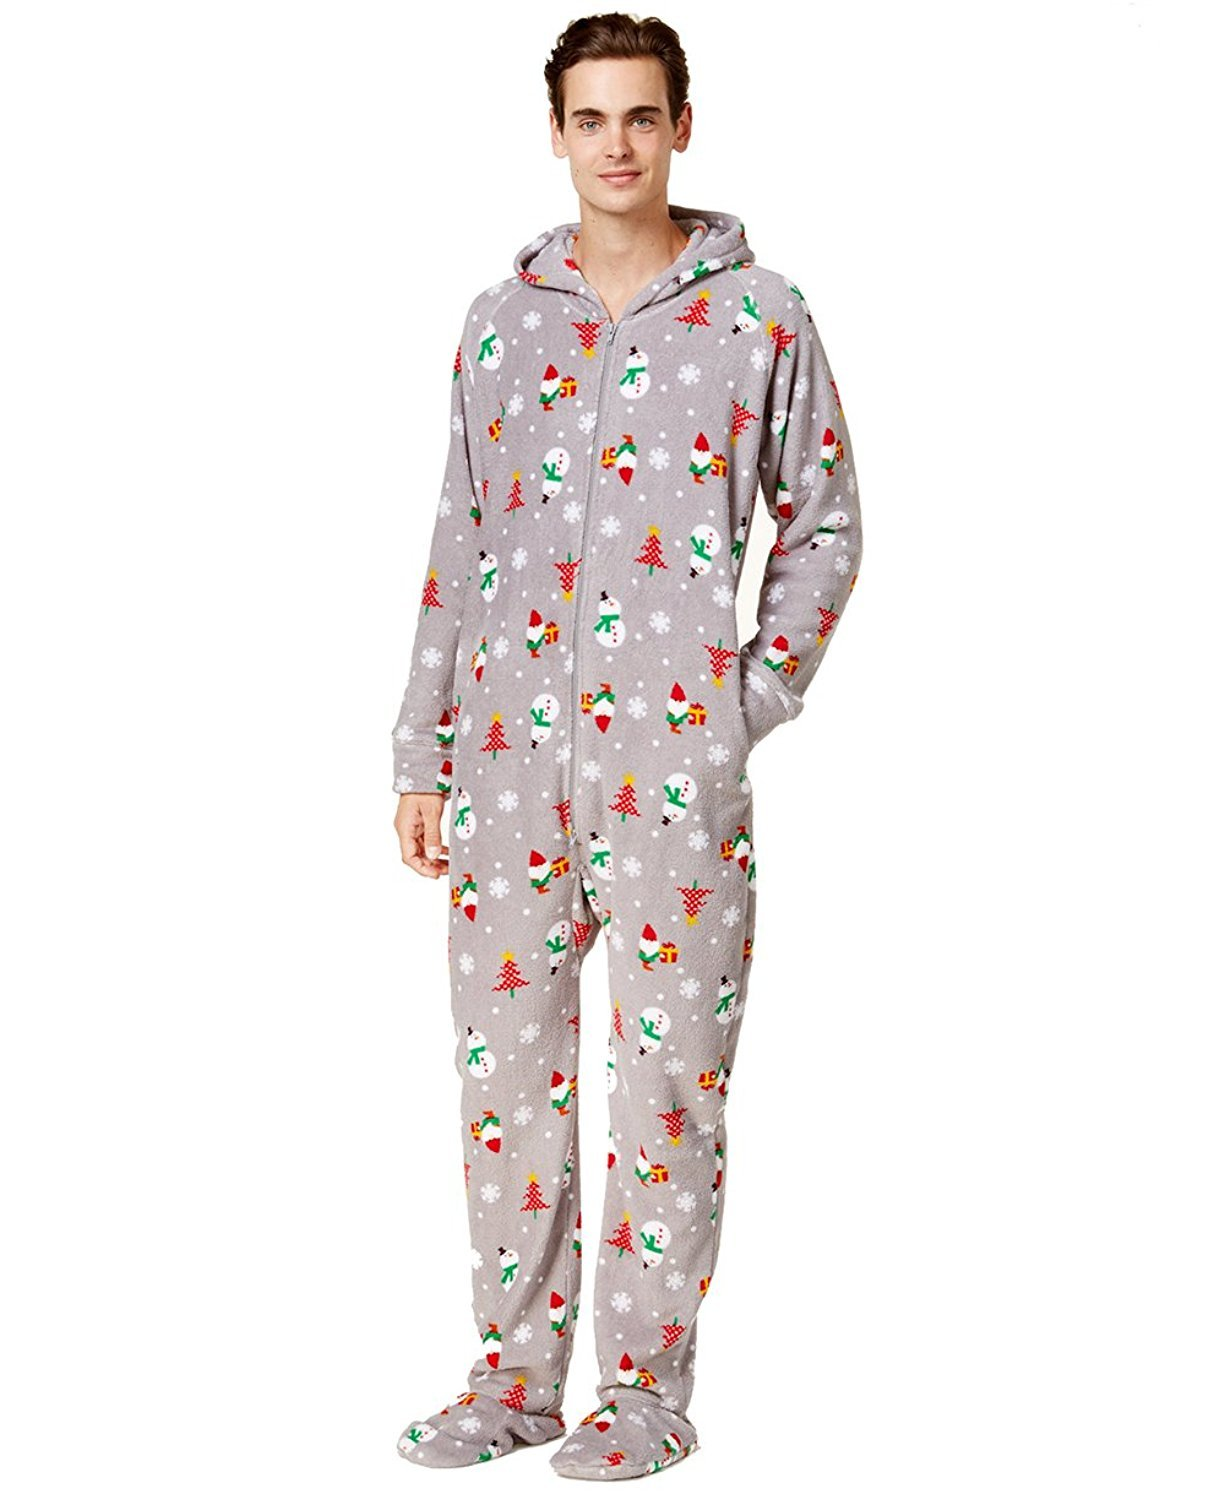 FAMILY PJS-MMG Family Pajamas Mens 1-Pc. Holiday Happy Gnom Happy Gnomes XL by Family Pajamas (Image #1)